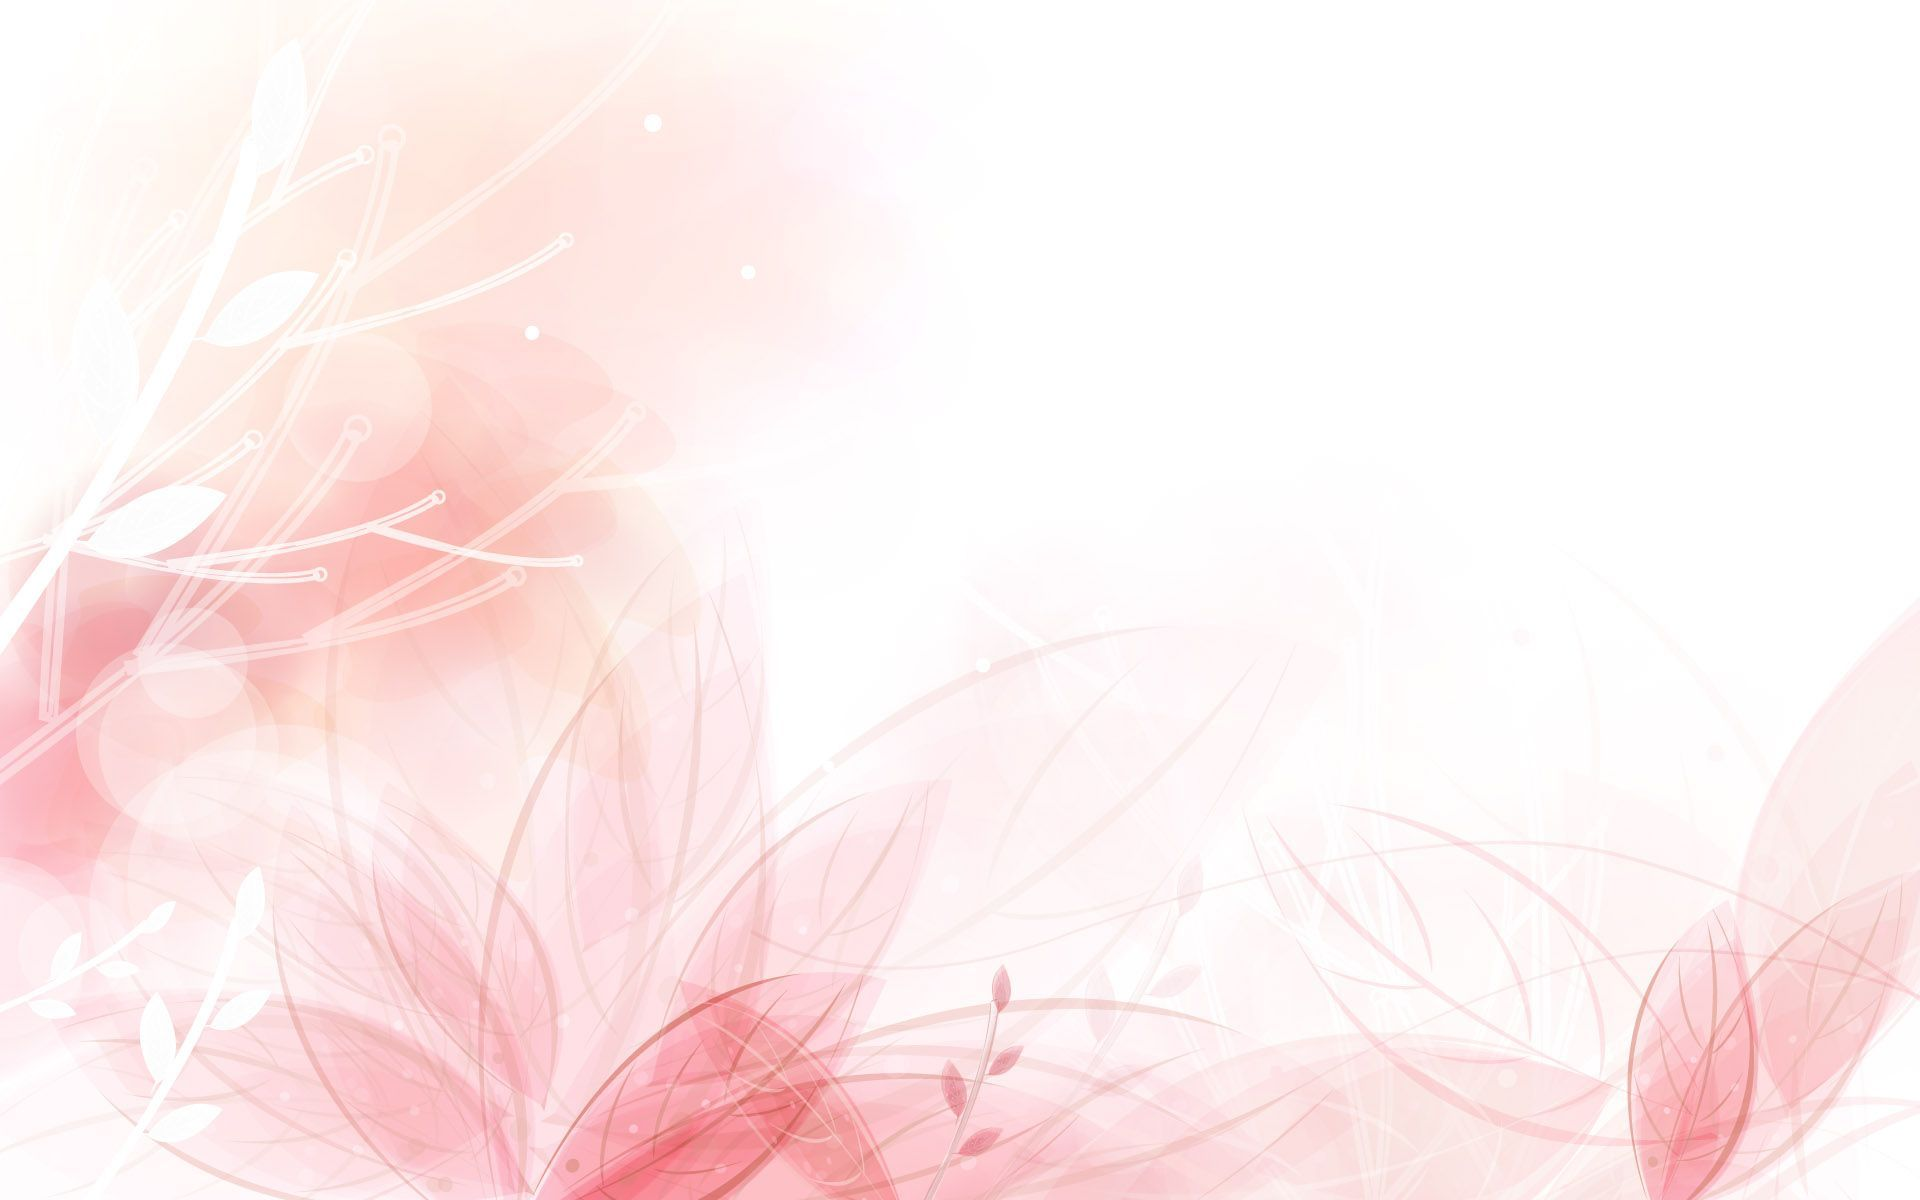 Pink flowers backgrounds wallpaper wallpapers pinterest flower pink flowers backgrounds wallpaper mightylinksfo Choice Image